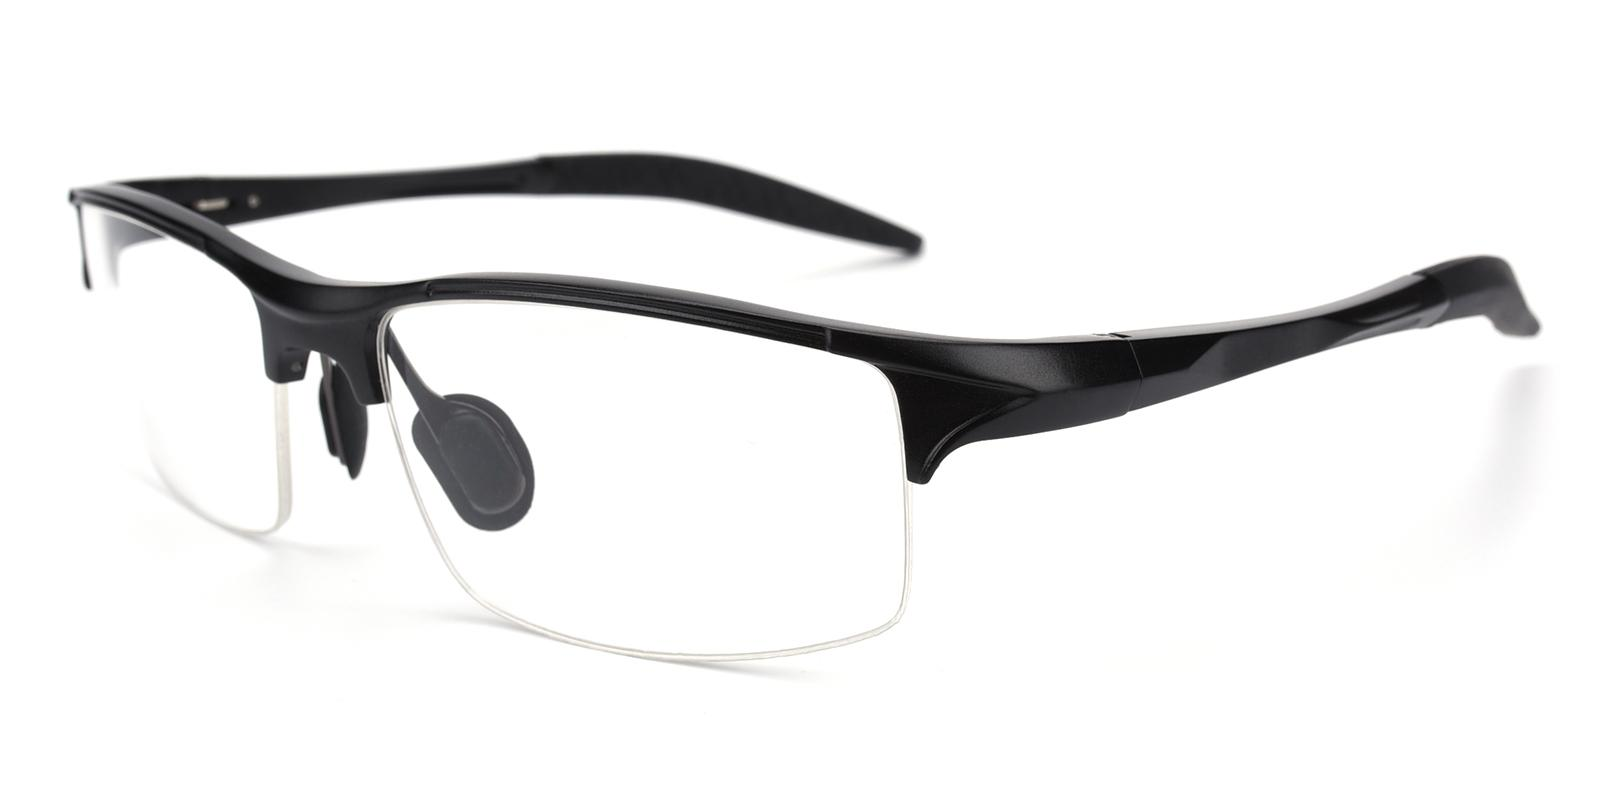 Darily-Black-Rectangle-Metal-SportsGlasses-additional1